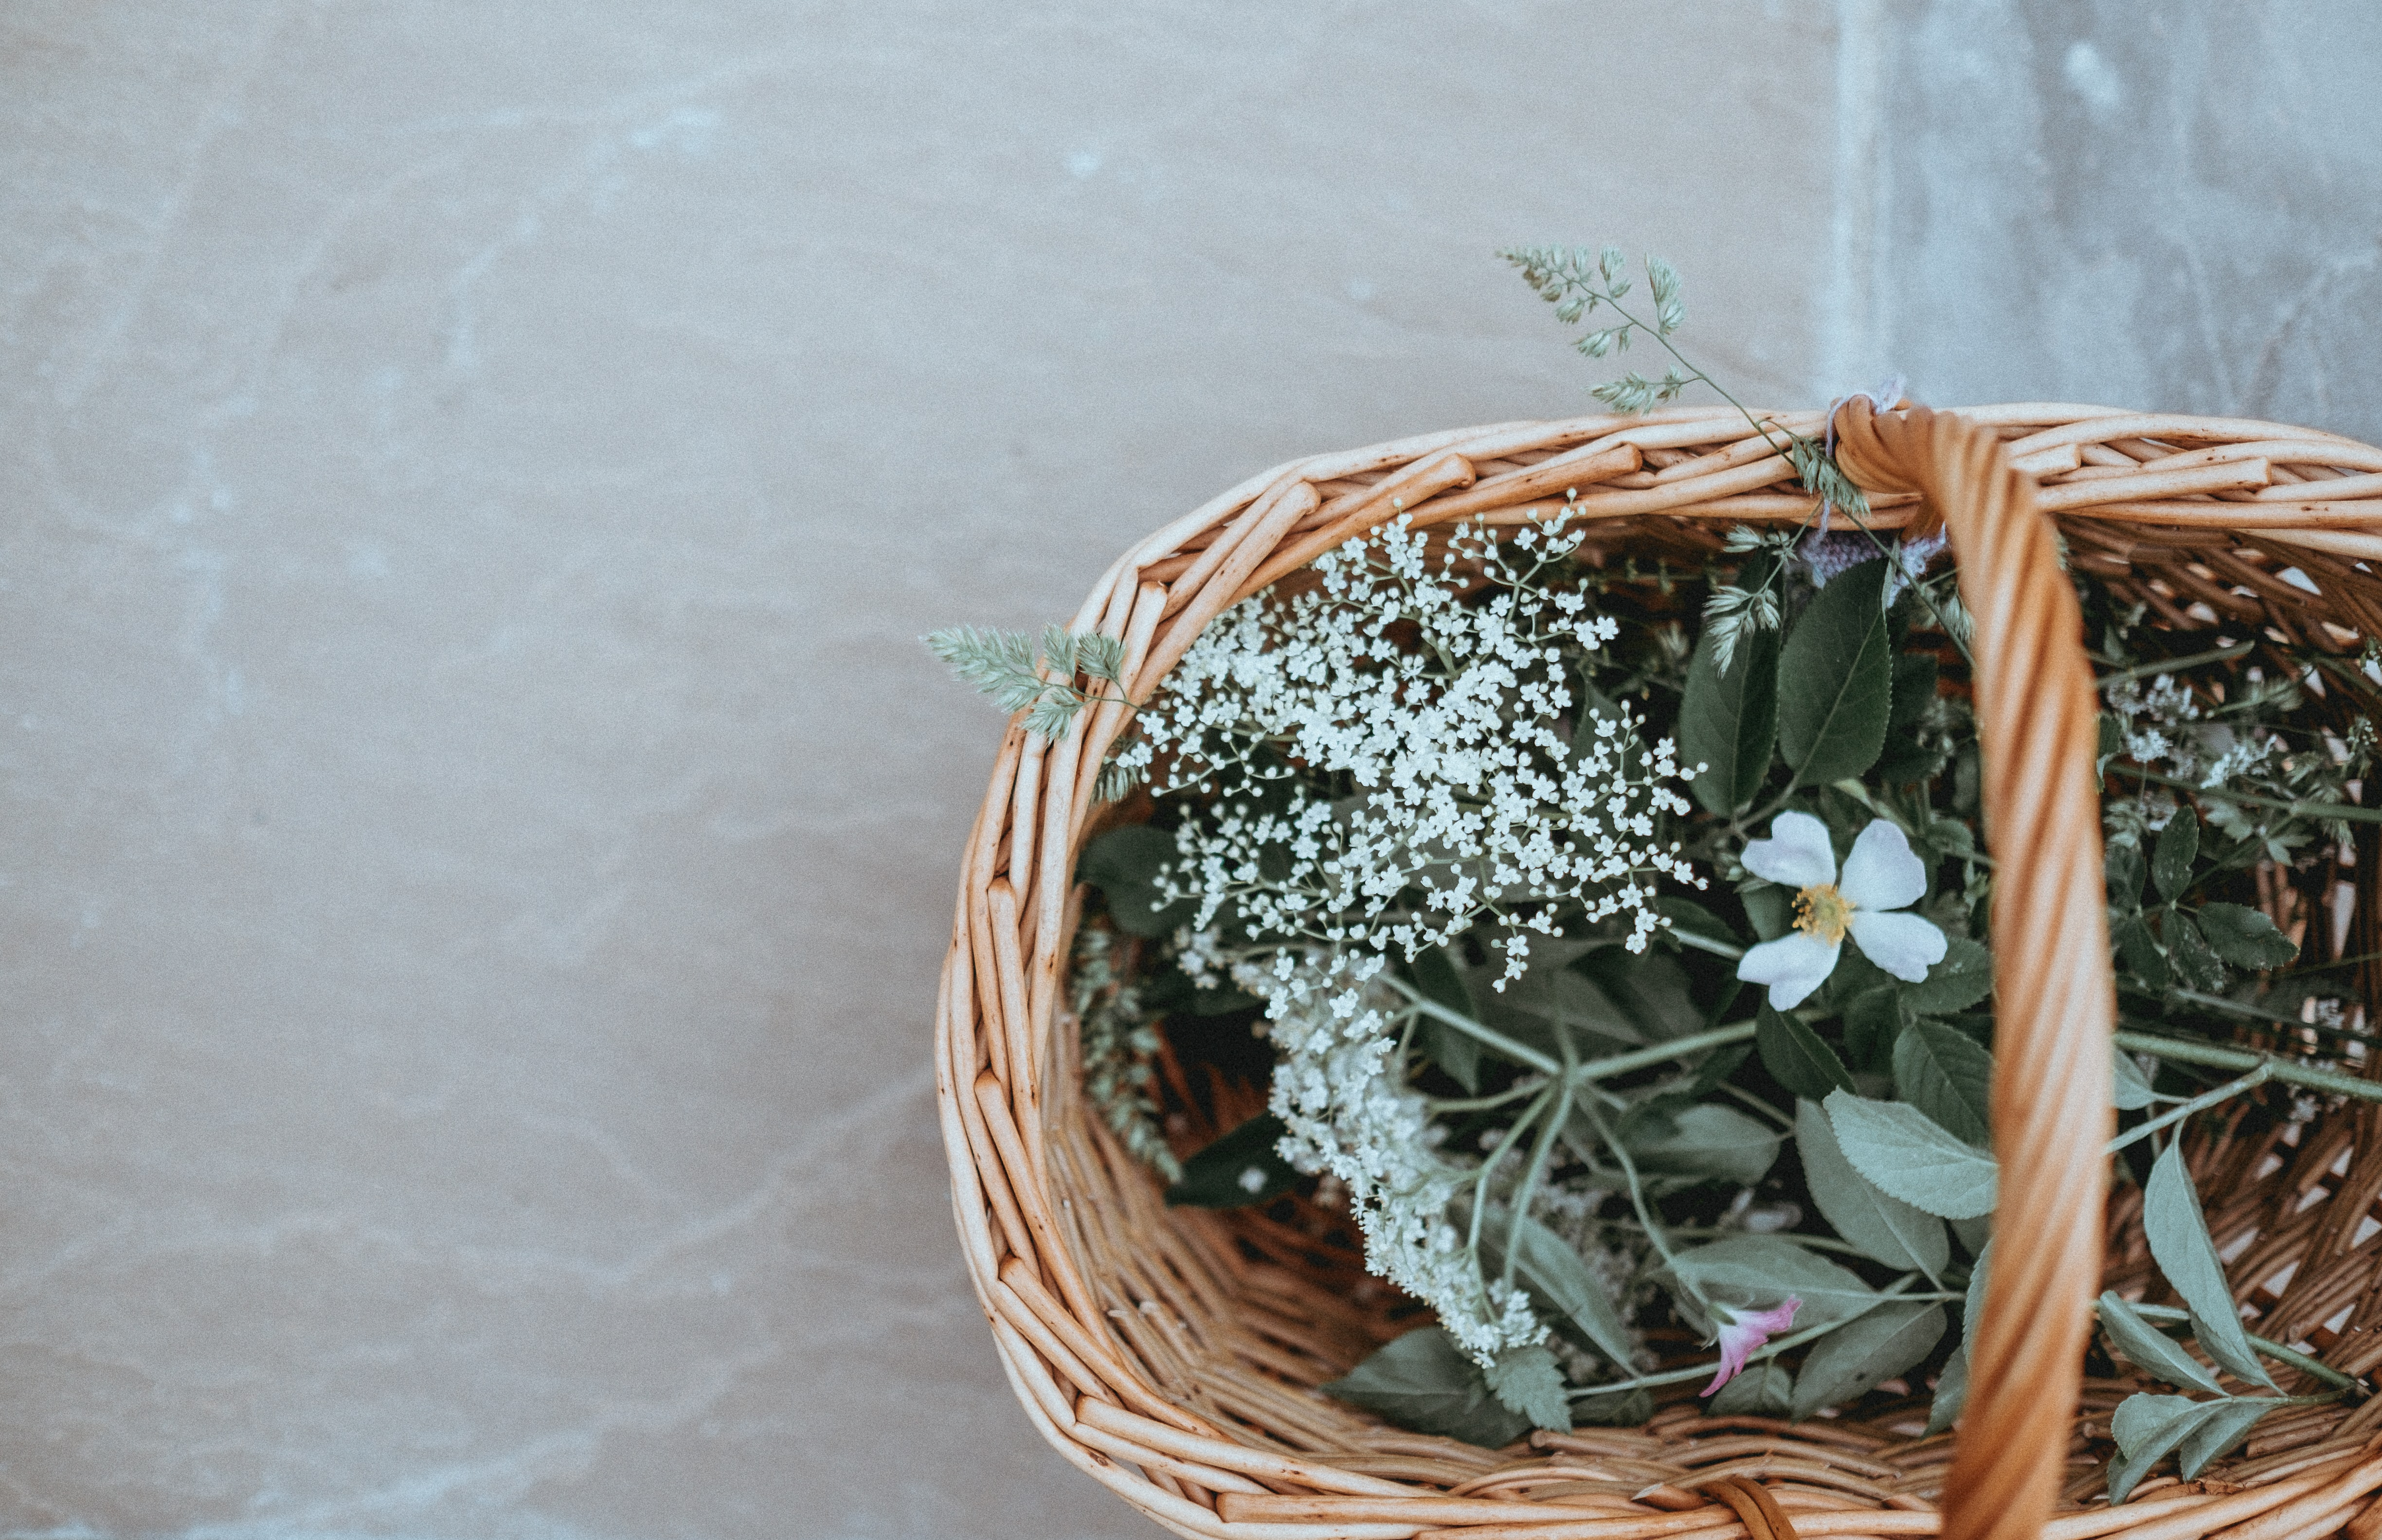 An overhead shot of a wicker basket with baby's-breath and other flowers